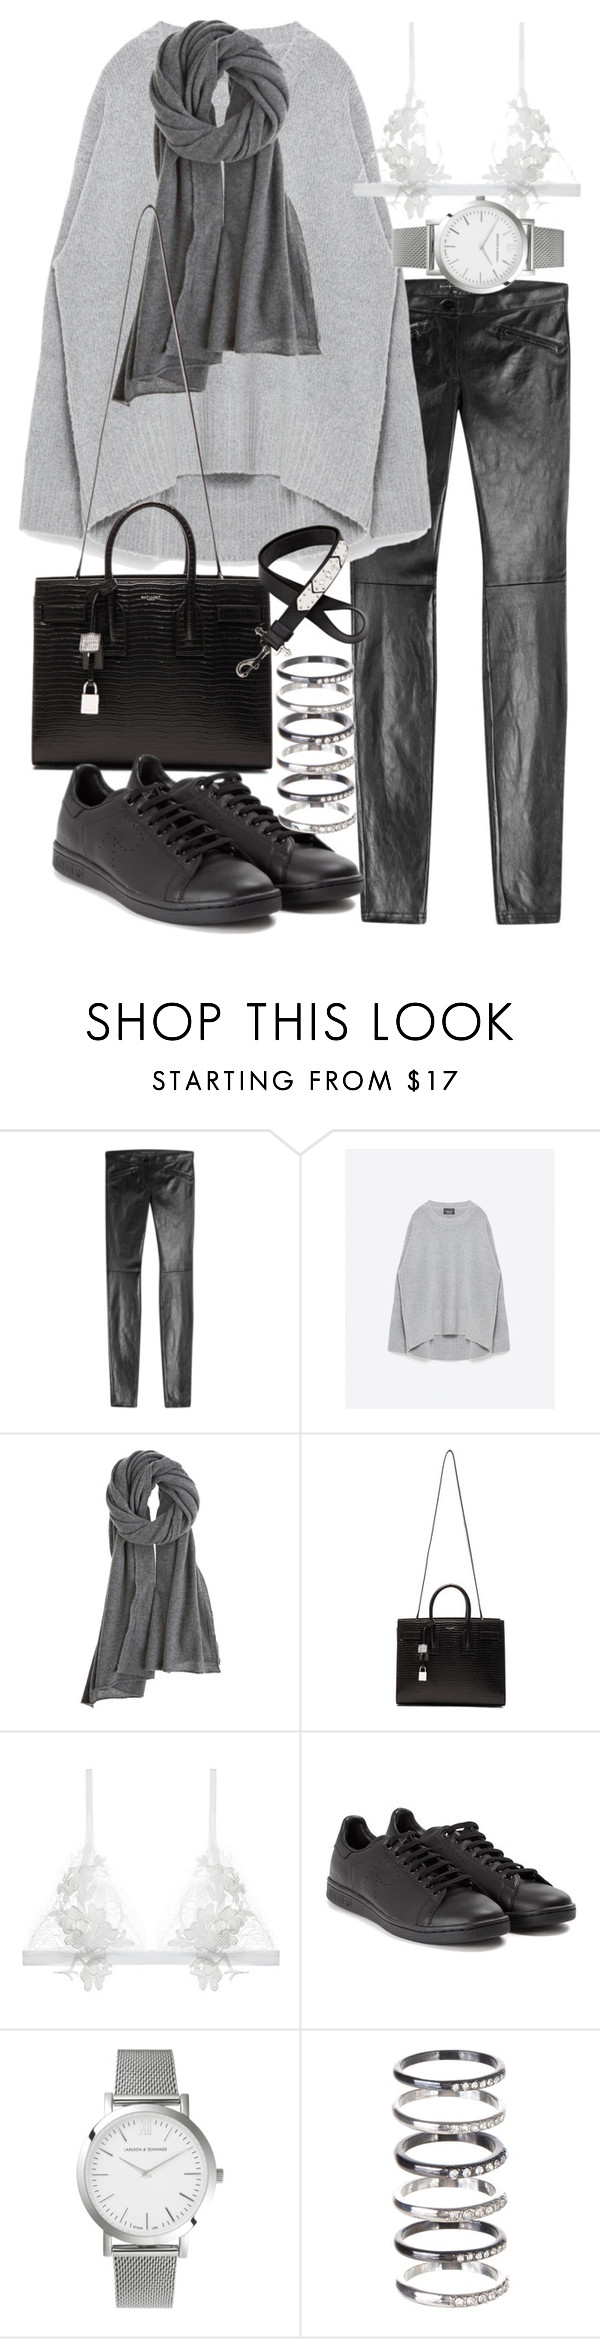 """""""Untitled #19466"""" by florencia95 ❤ liked on Polyvore featuring Barbara Bui, Zara, Calypso St. Barth, Yves Saint Laurent, For Love & Lemons, adidas, Larsson & Jennings, M.N.G and Givenchy"""